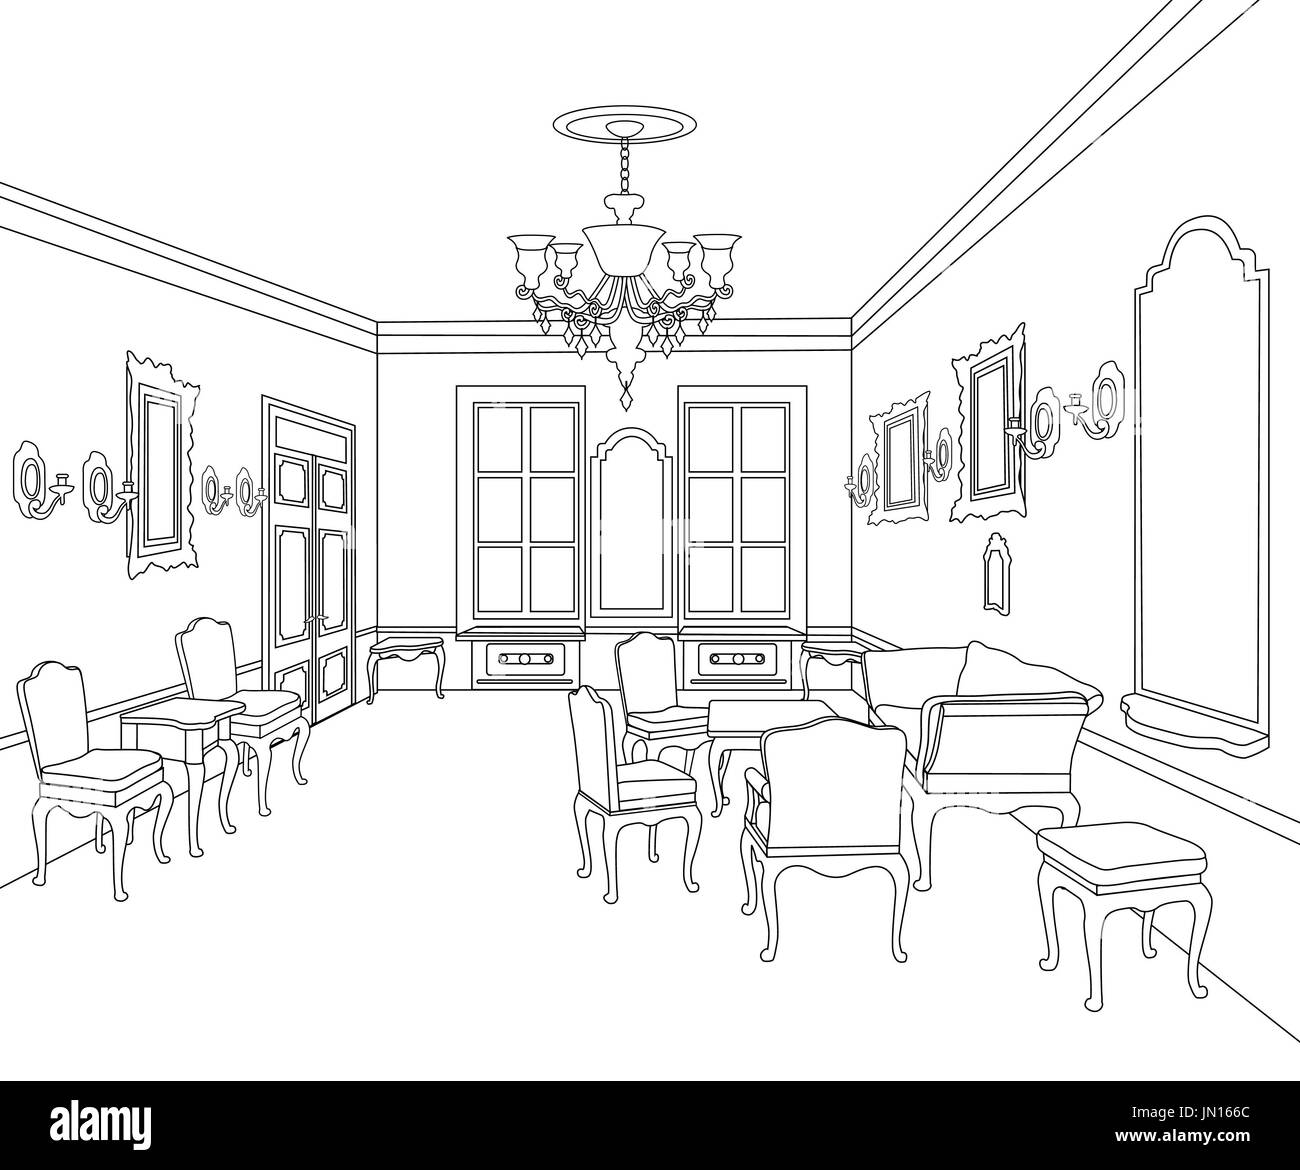 Interior outline sketch furniture blueprint architectural design furniture blueprint architectural design living room malvernweather